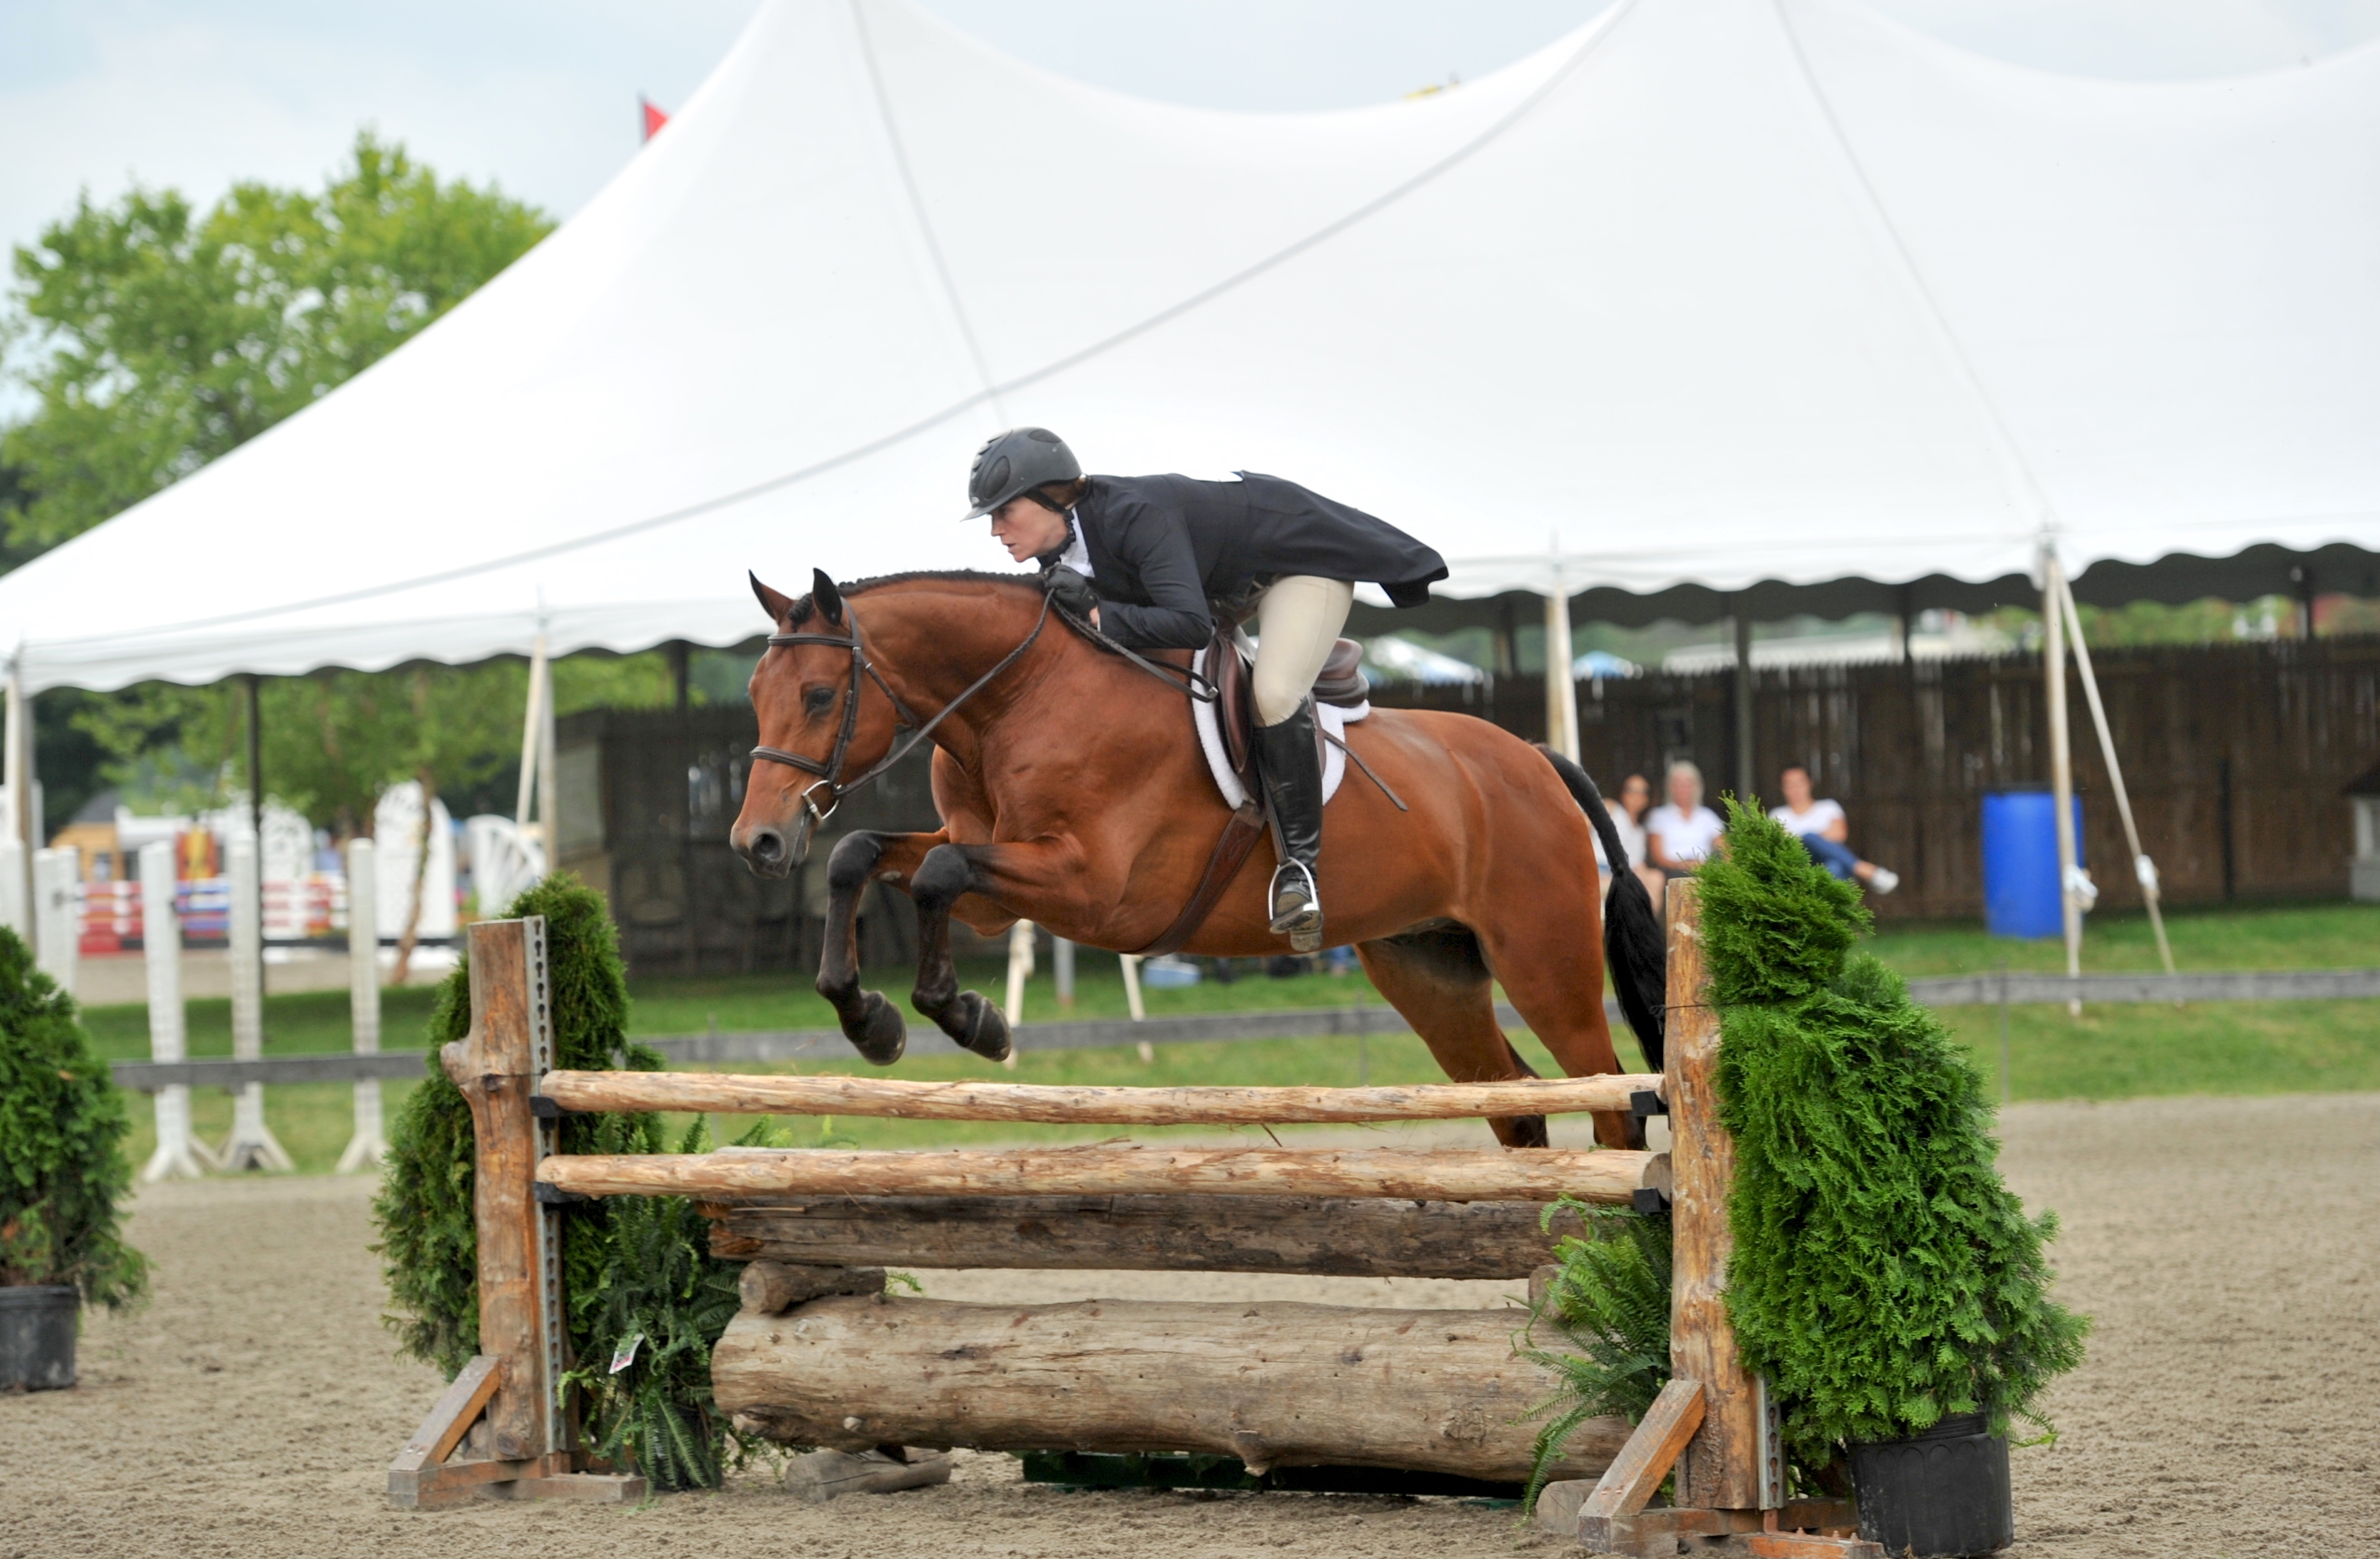 "Sarah Barge and Danturano won the $5,000 3'3"" NEHJA Hunter Derby, presented by Eastern Hay, and the $15,000 3'3"" NEHJA Hunter Derby, presented by Land Rover Experience, before also being named circuit champions in the 3'3"" Pre-Green Division at the Vermont Summer Festival.<br><b>Photo by <a href='http://www.andrewryback.com/' target='_blank'>Andrew Ryback Photography</a></b>"